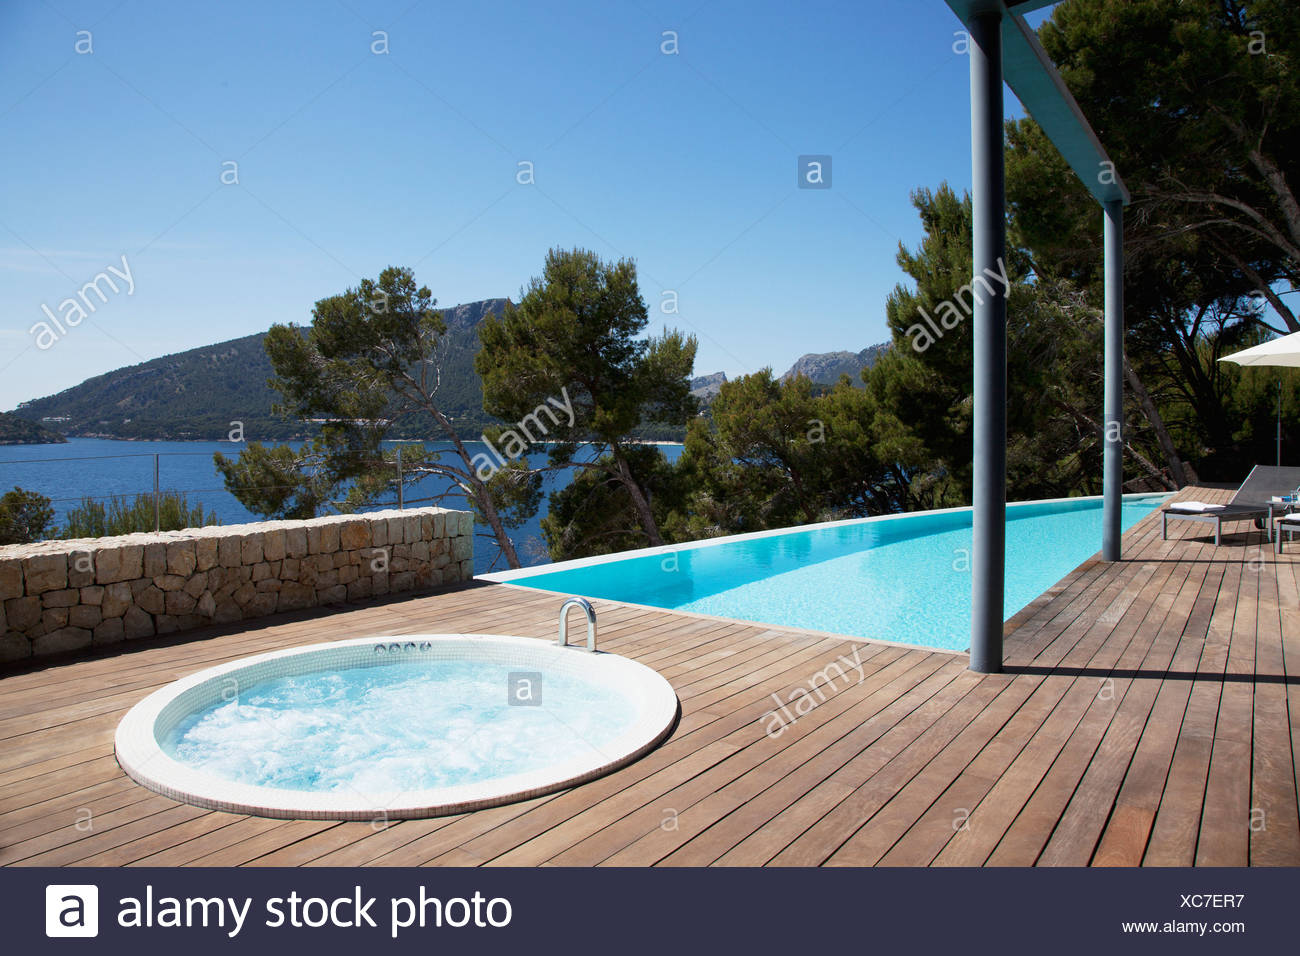 Hot Tub Garden Stock Photos & Hot Tub Garden Stock Images - Alamy